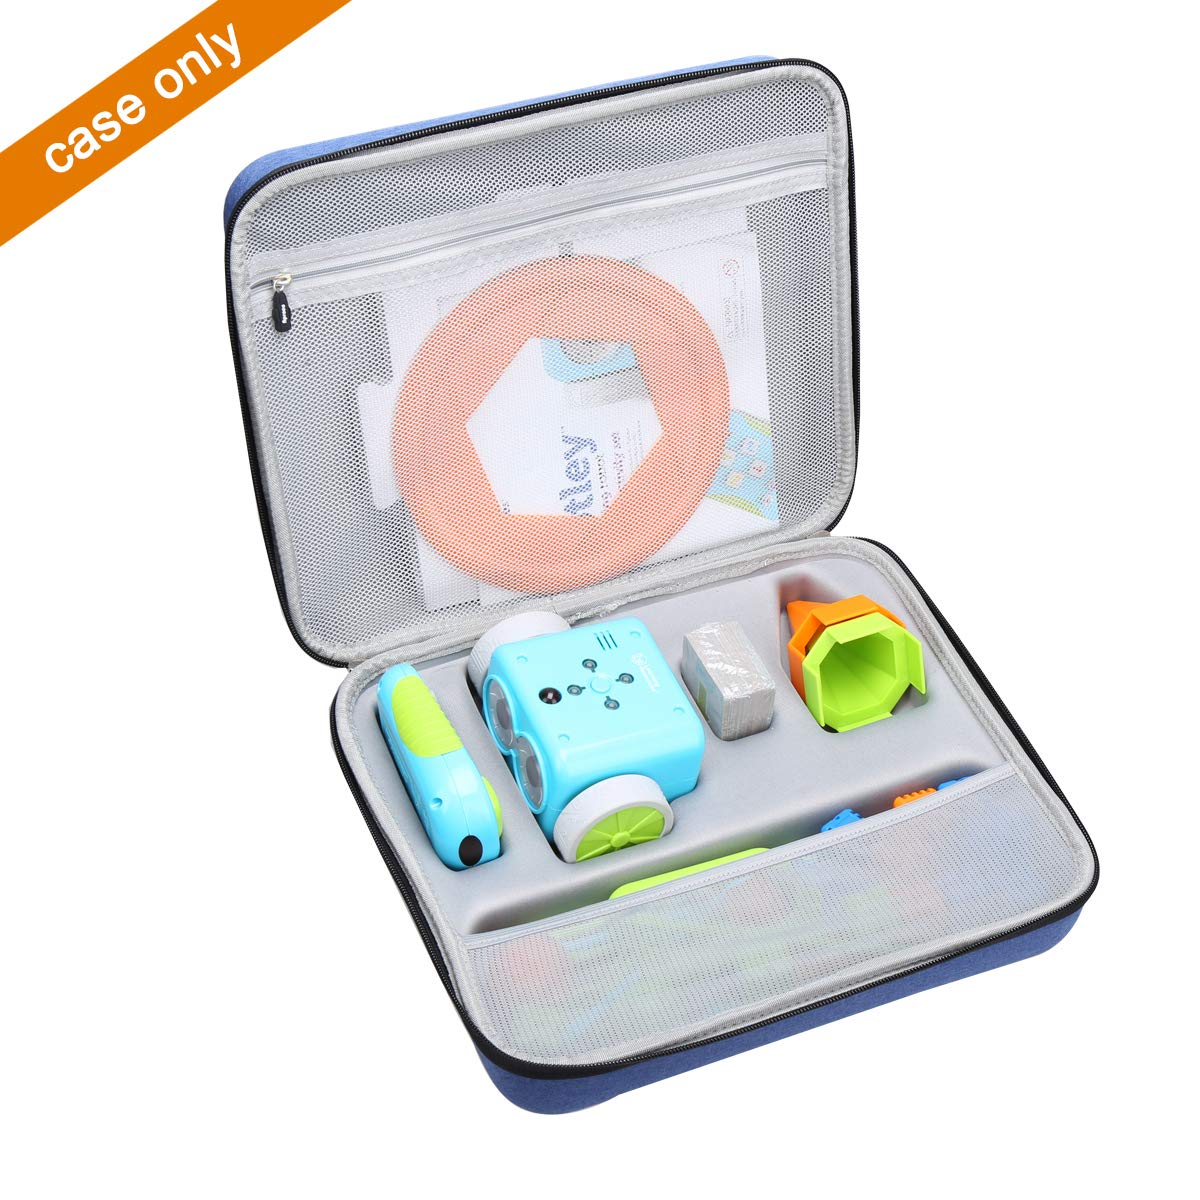 Aproca Hard Storage Carrying Travel Case for Learning Resources Botley The Coding Robot Activity Set (Blue) by Aproca